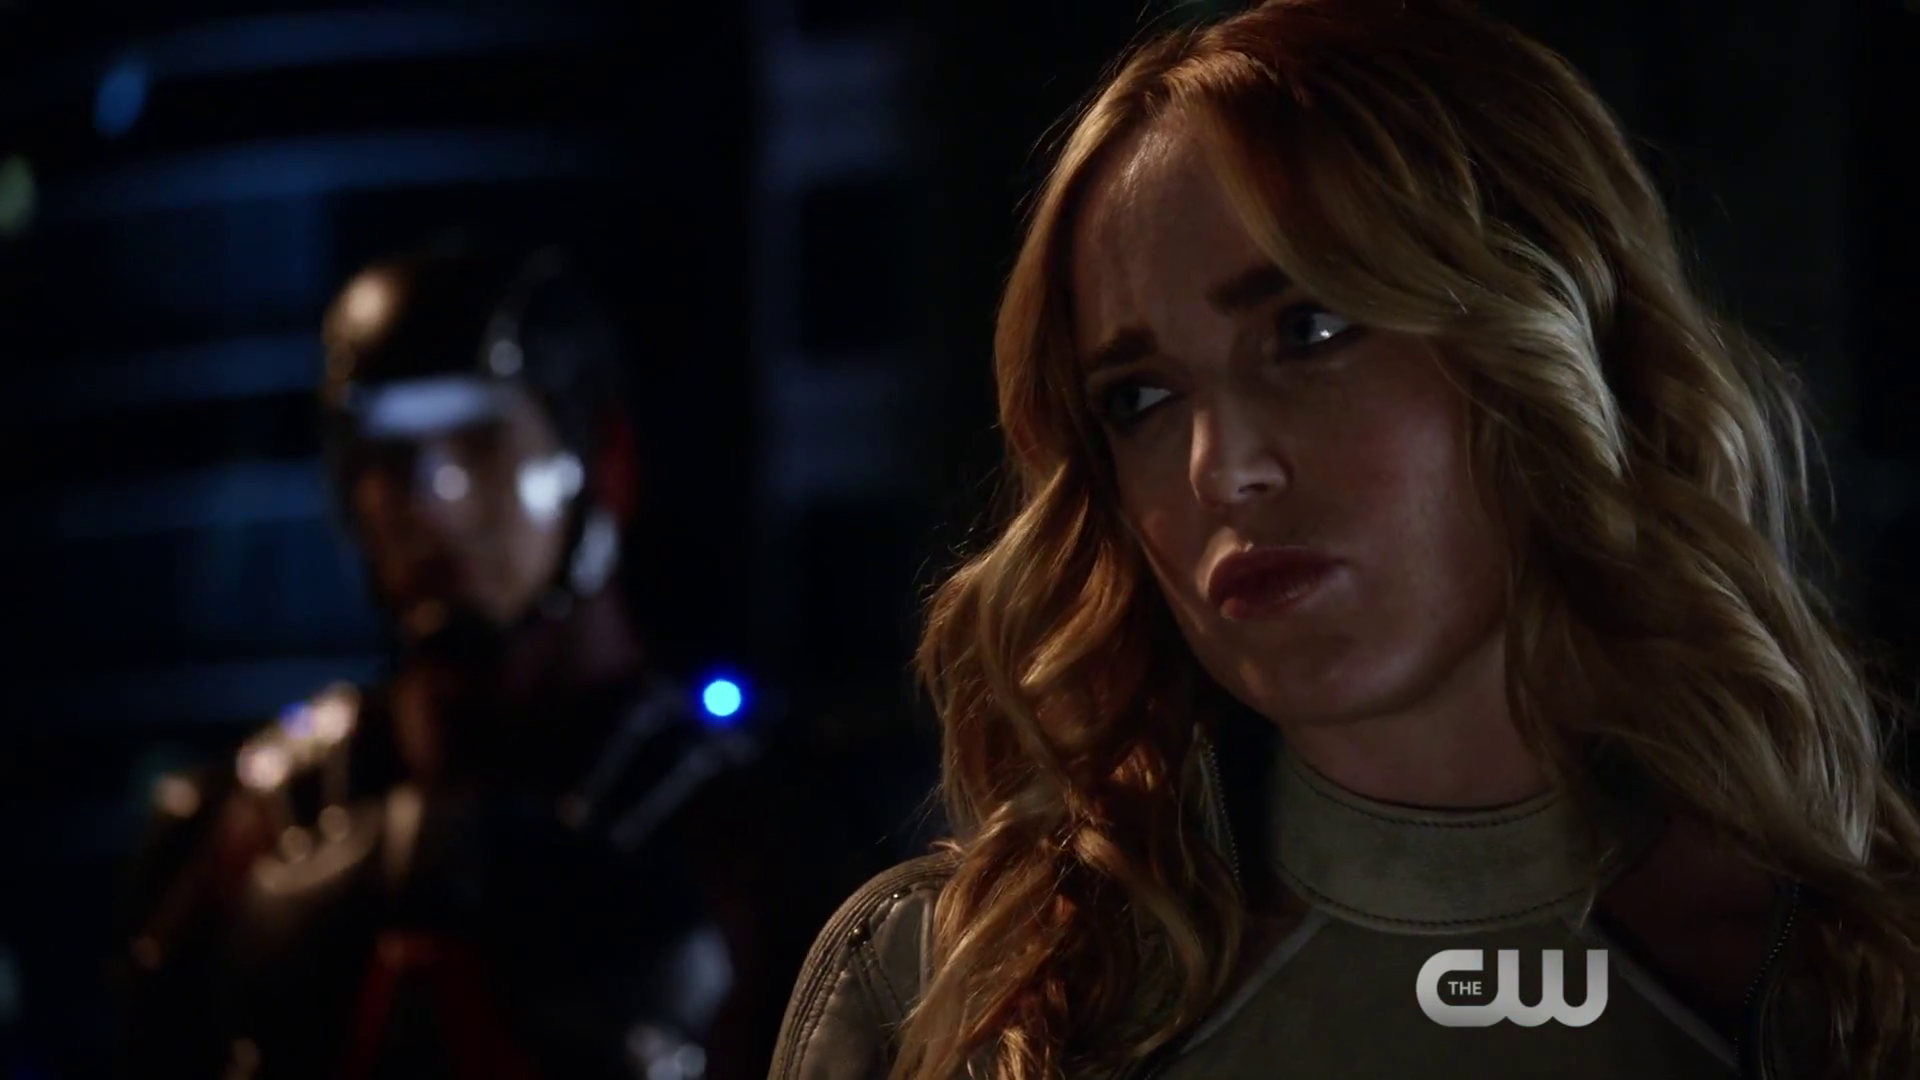 Wallpaper Design Caity Lotz Pictures And Wallpapers